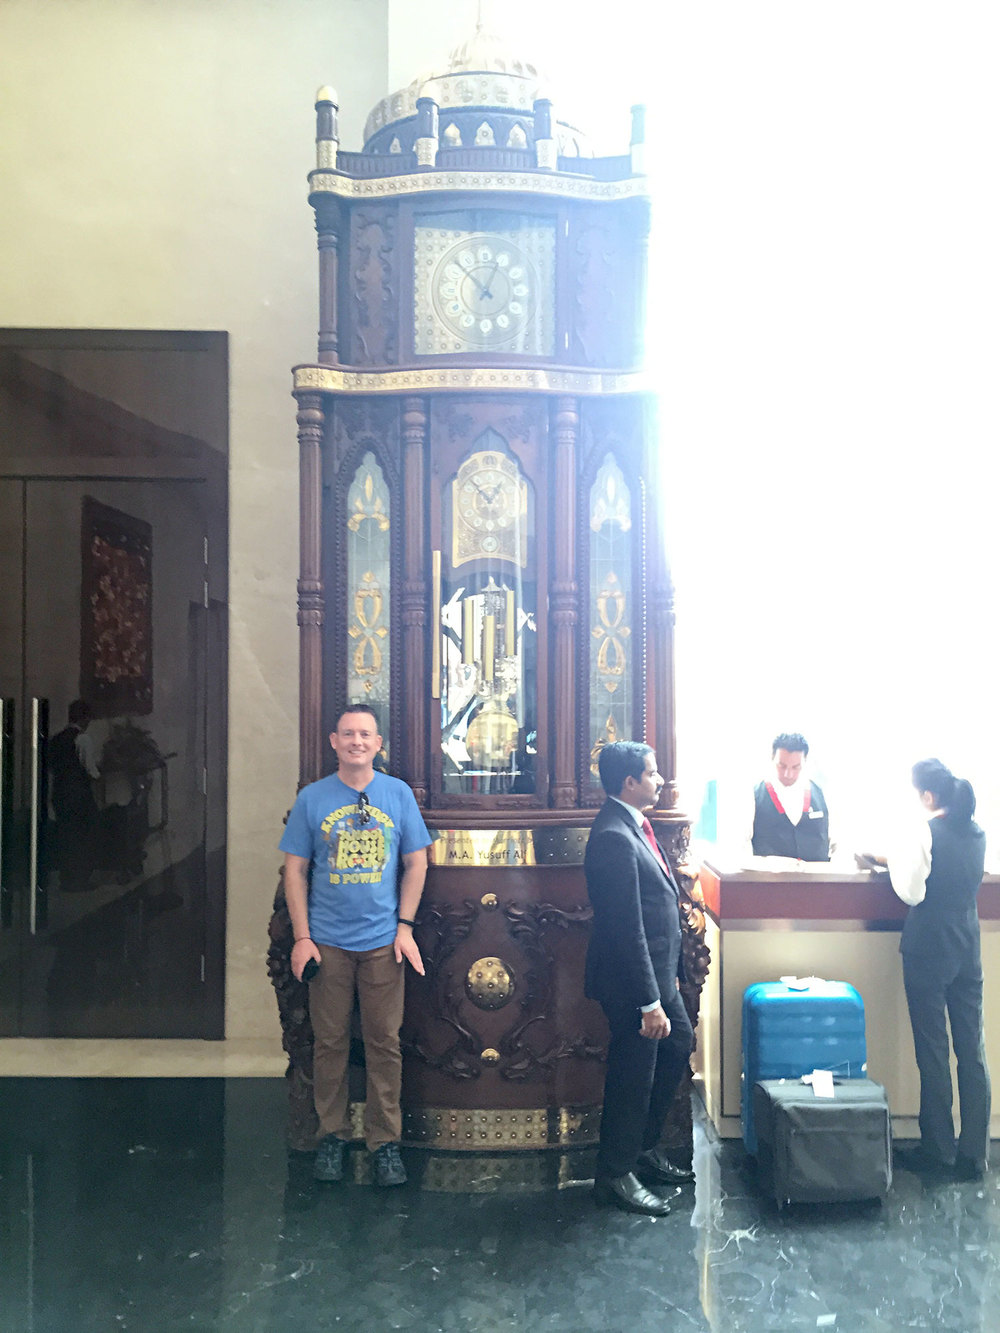 Silly photo of me in front of the largest grandfather clock I've seen in the Kochi Marriott hotel lobby.